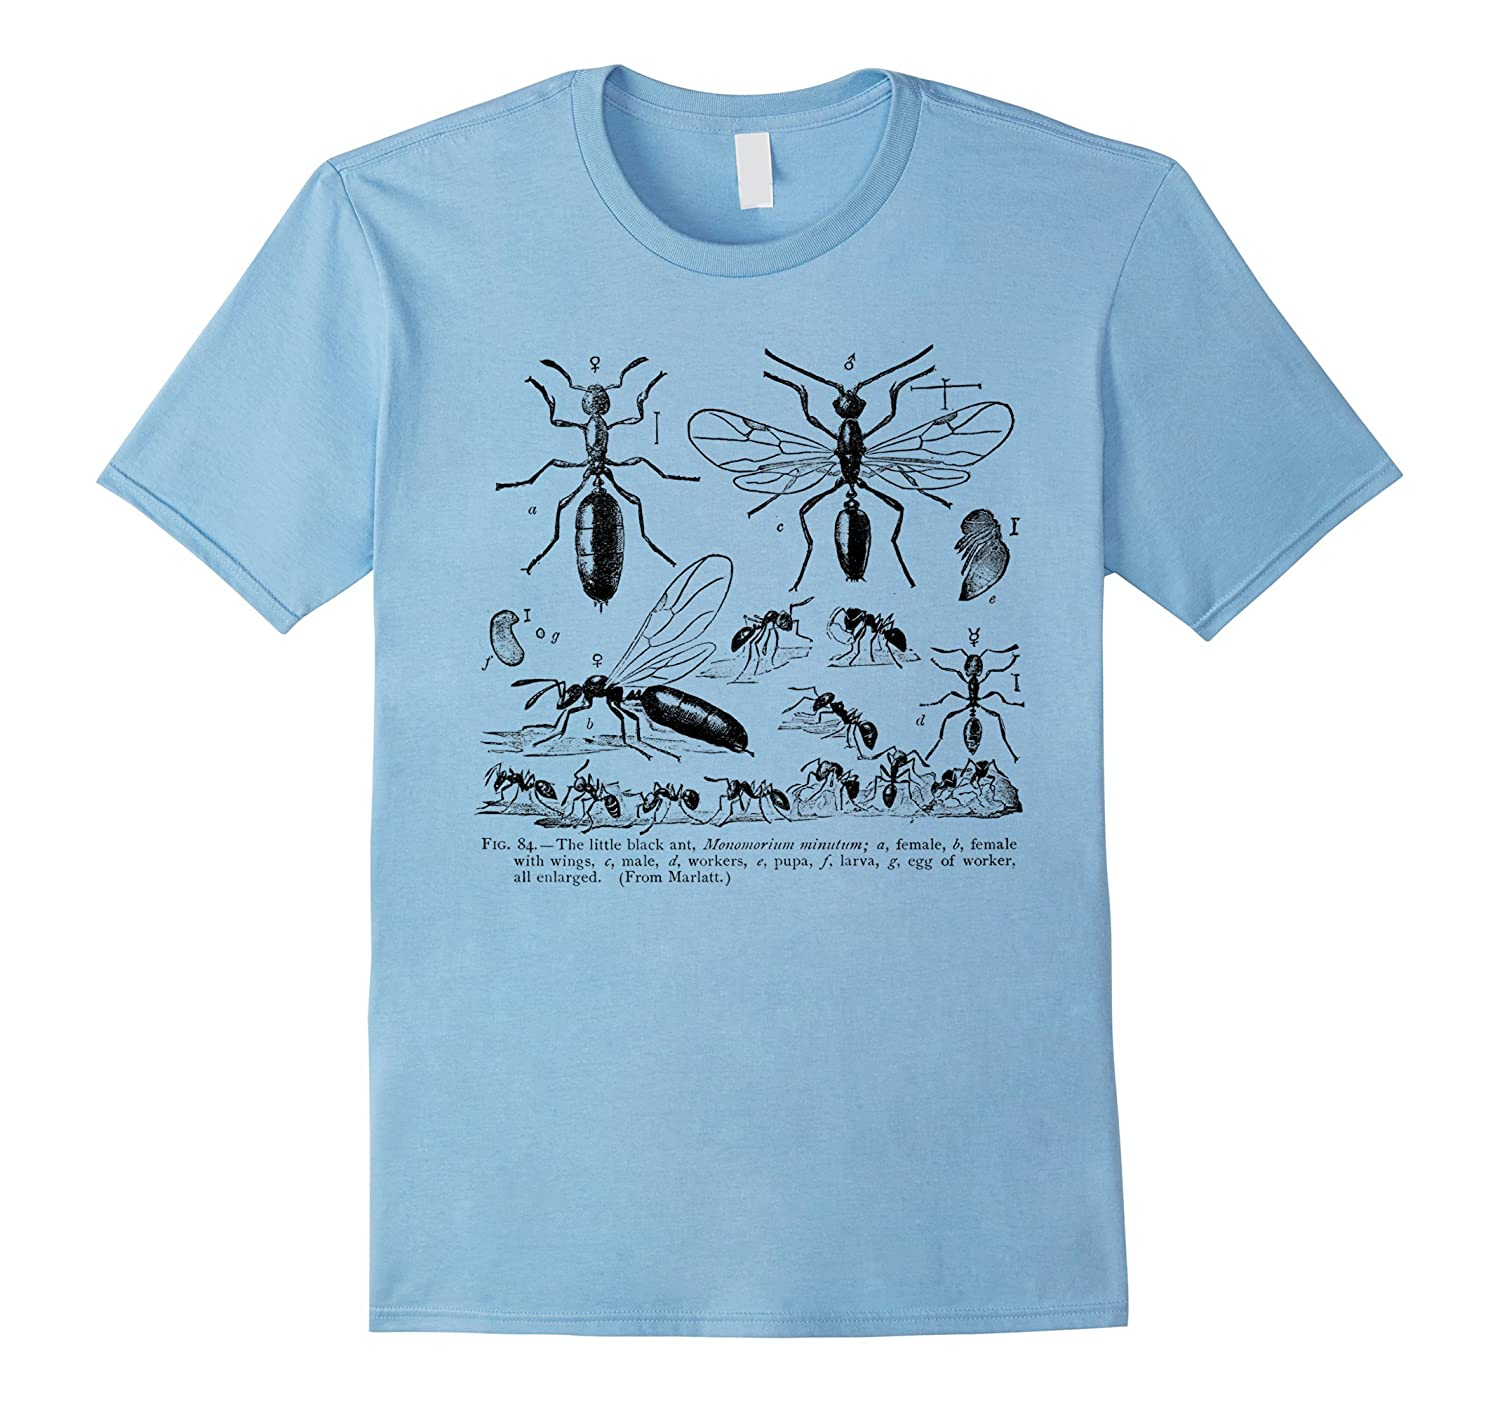 Vintage Entomology Myrmecology Black Ant Tee T-shirt-CD